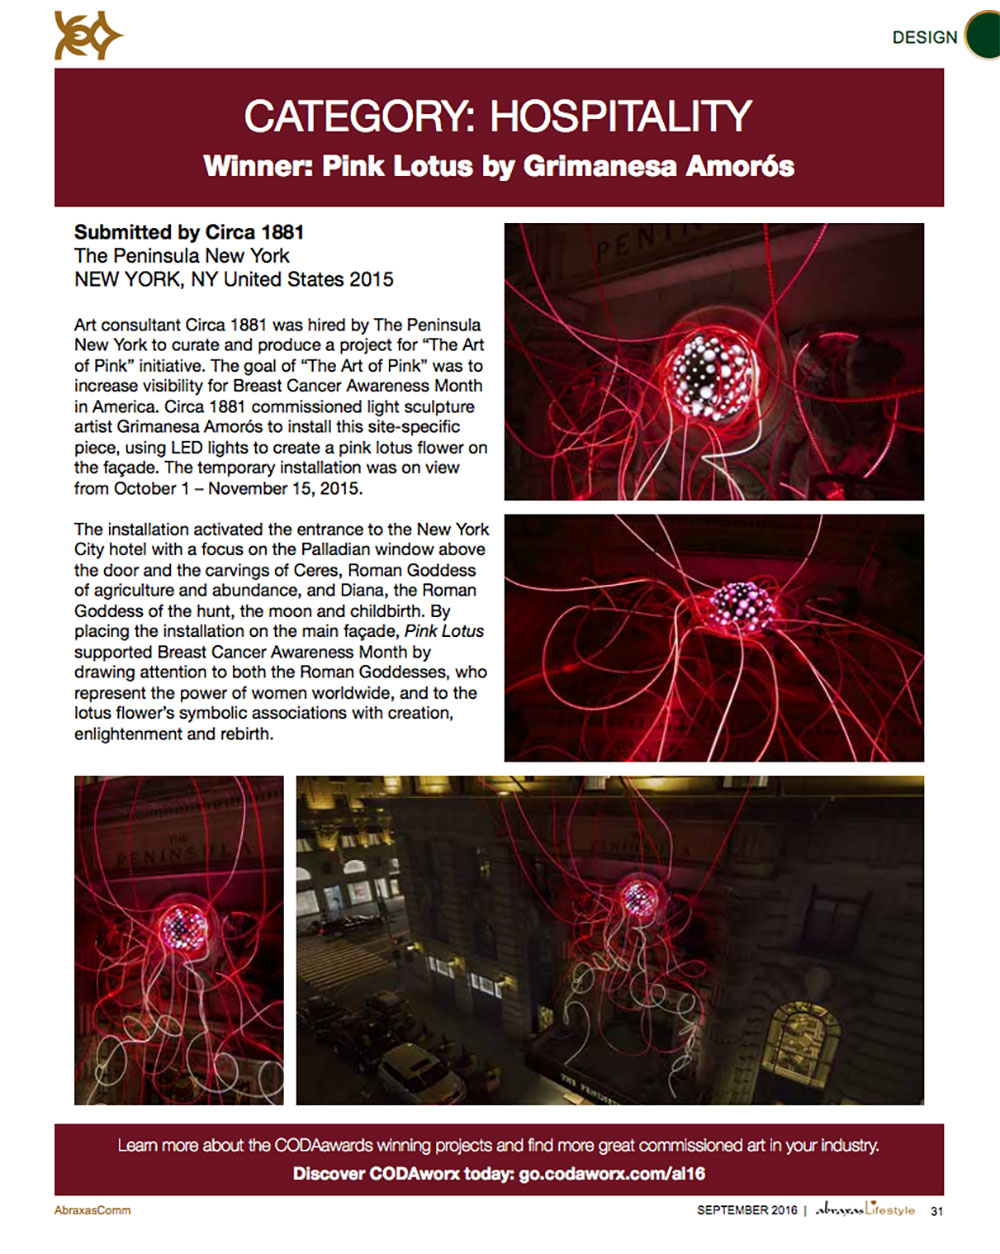 CODAworx Awards Abraxas Lifestyle Magazine on Pink Lotus by Grimanesa Amoros by Circa 1881 at the Peninsula Hotel in New York